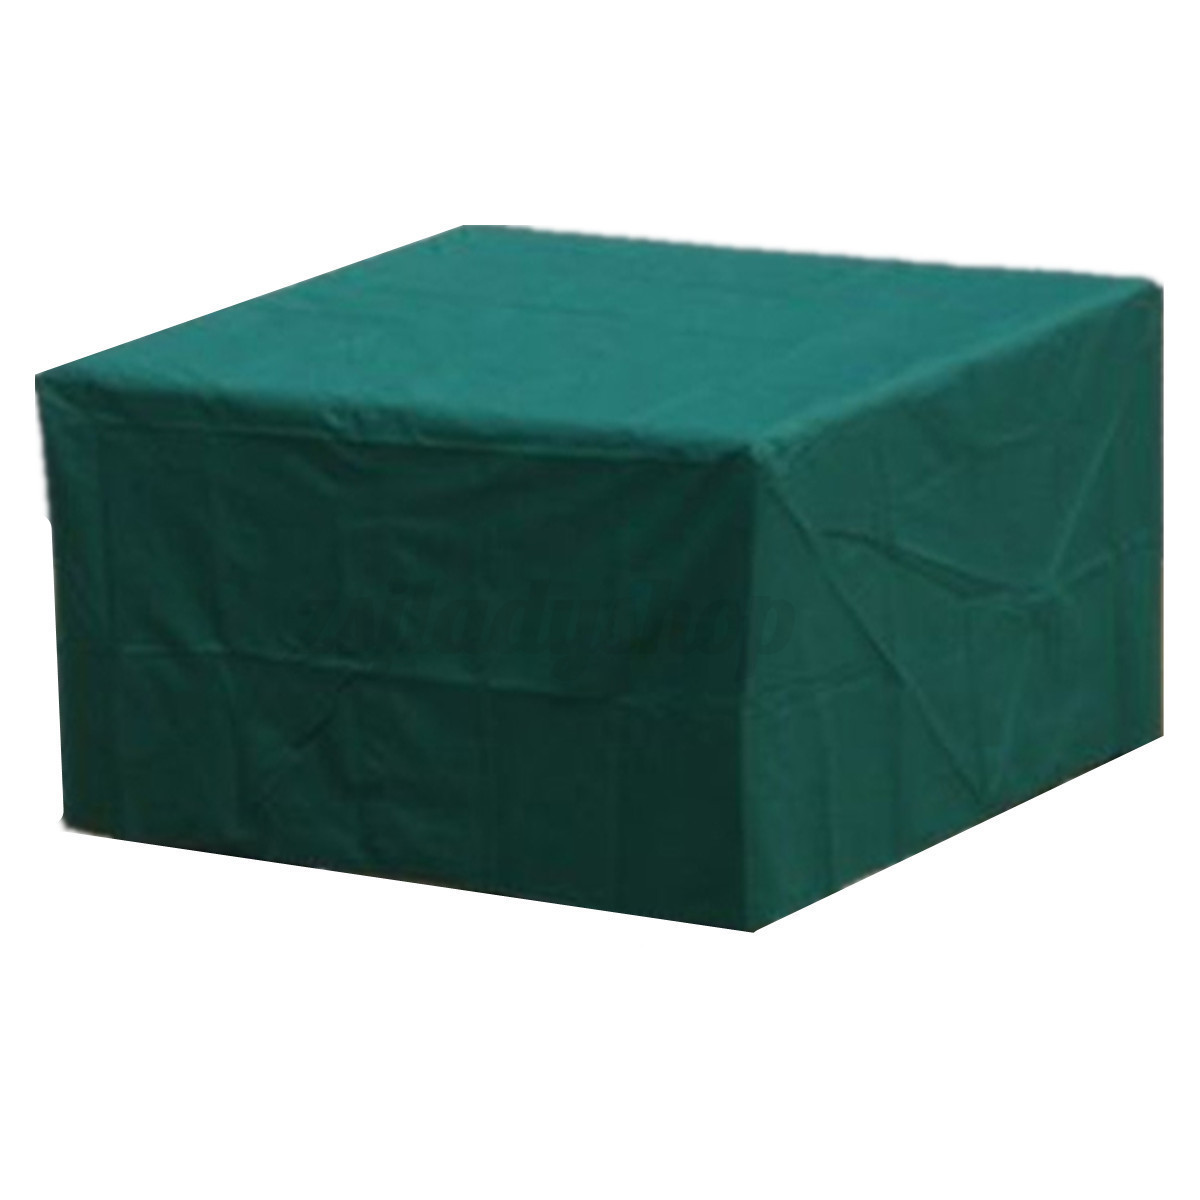 295x203x89 Rectangular Outdoor Furniture Cover For Patio Table Chair Waterpro